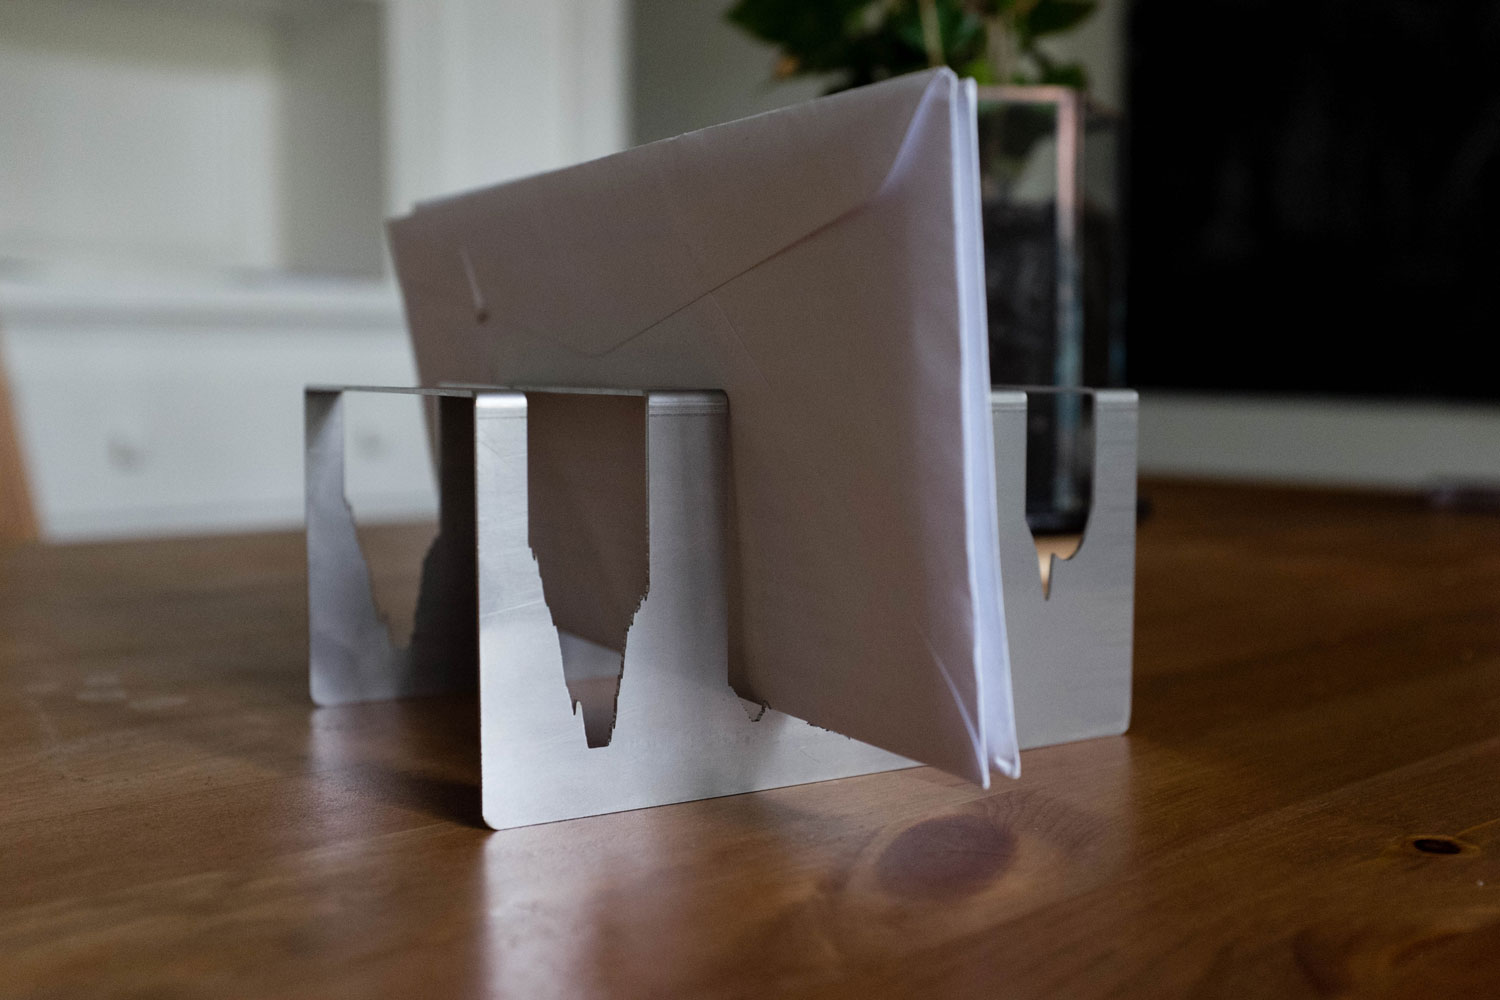 Product #02: The Trench Mail Sorter